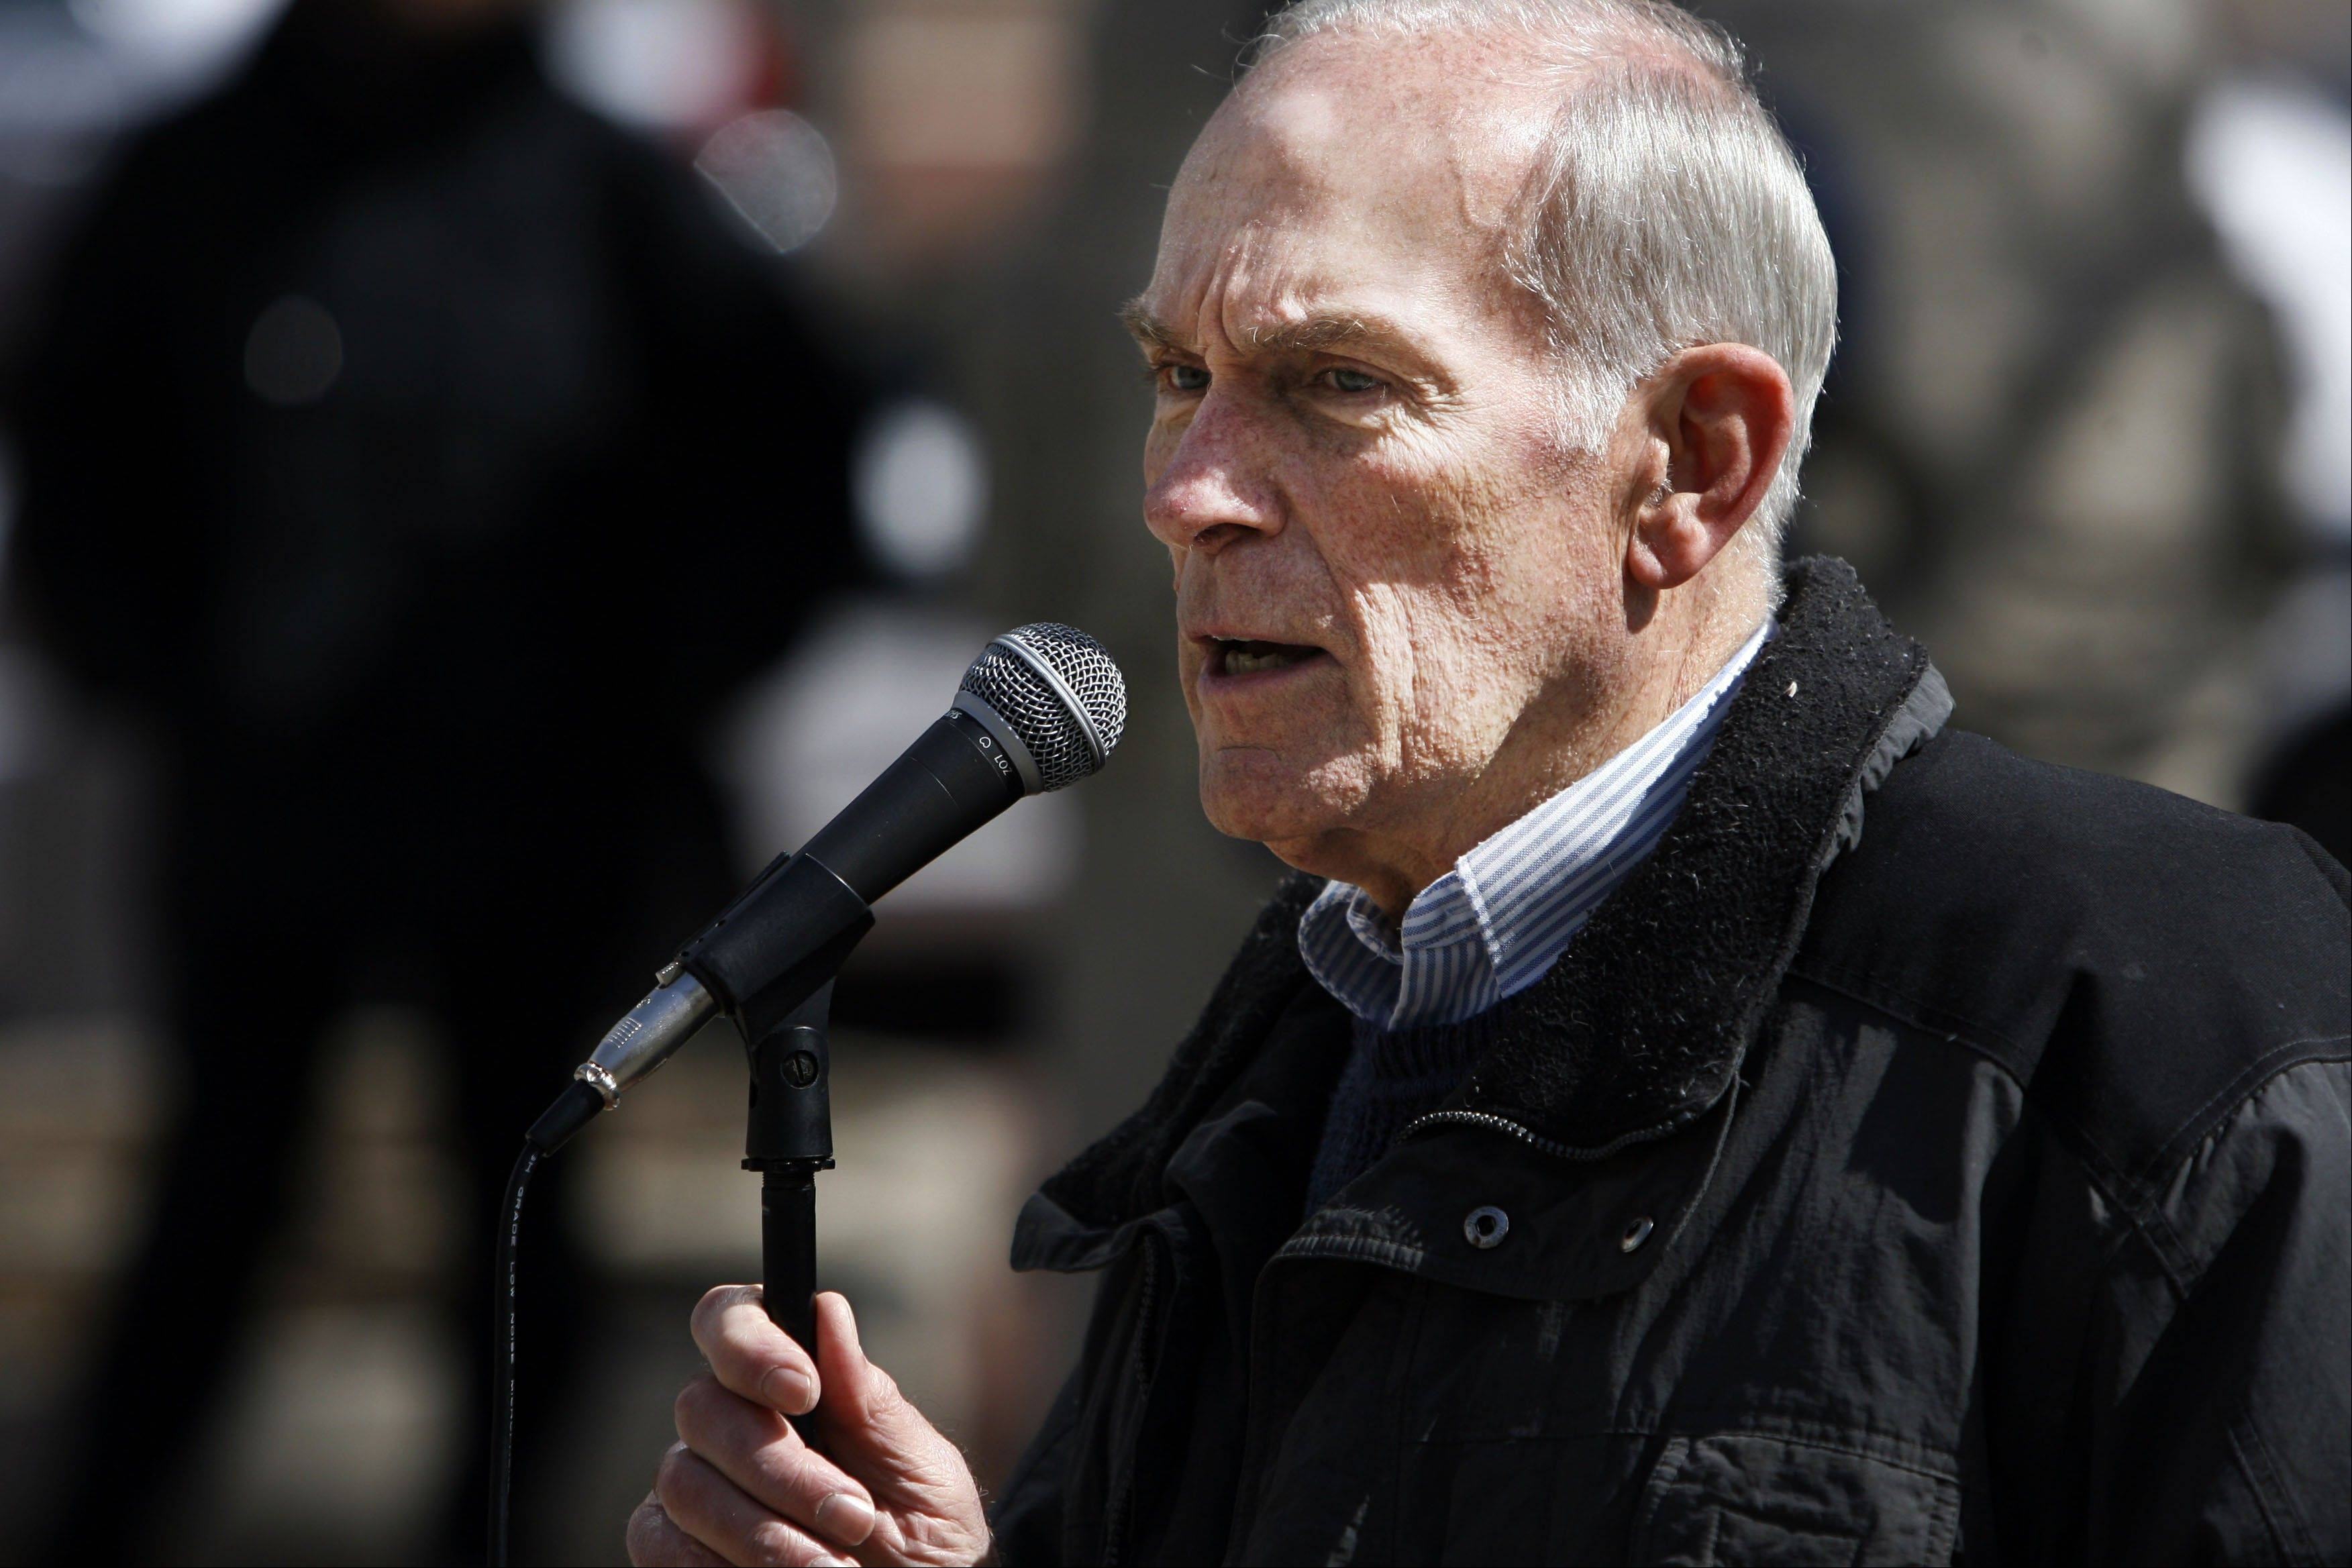 This March 29, 2008, file photo shows former Congressman Andy Jacobs Jr. during the Peace Rally on Monument Circle in Indianapolis, Ind. Jacobs Jr., a former longtime Indiana congressman, has died at age 81, according to a family spokesman. Gary Taylor, a family friend and former campaign manager for Jacobs, said Saturday the former Democratic lawmaker had died earlier in the day peacefully at his Indianapolis home.